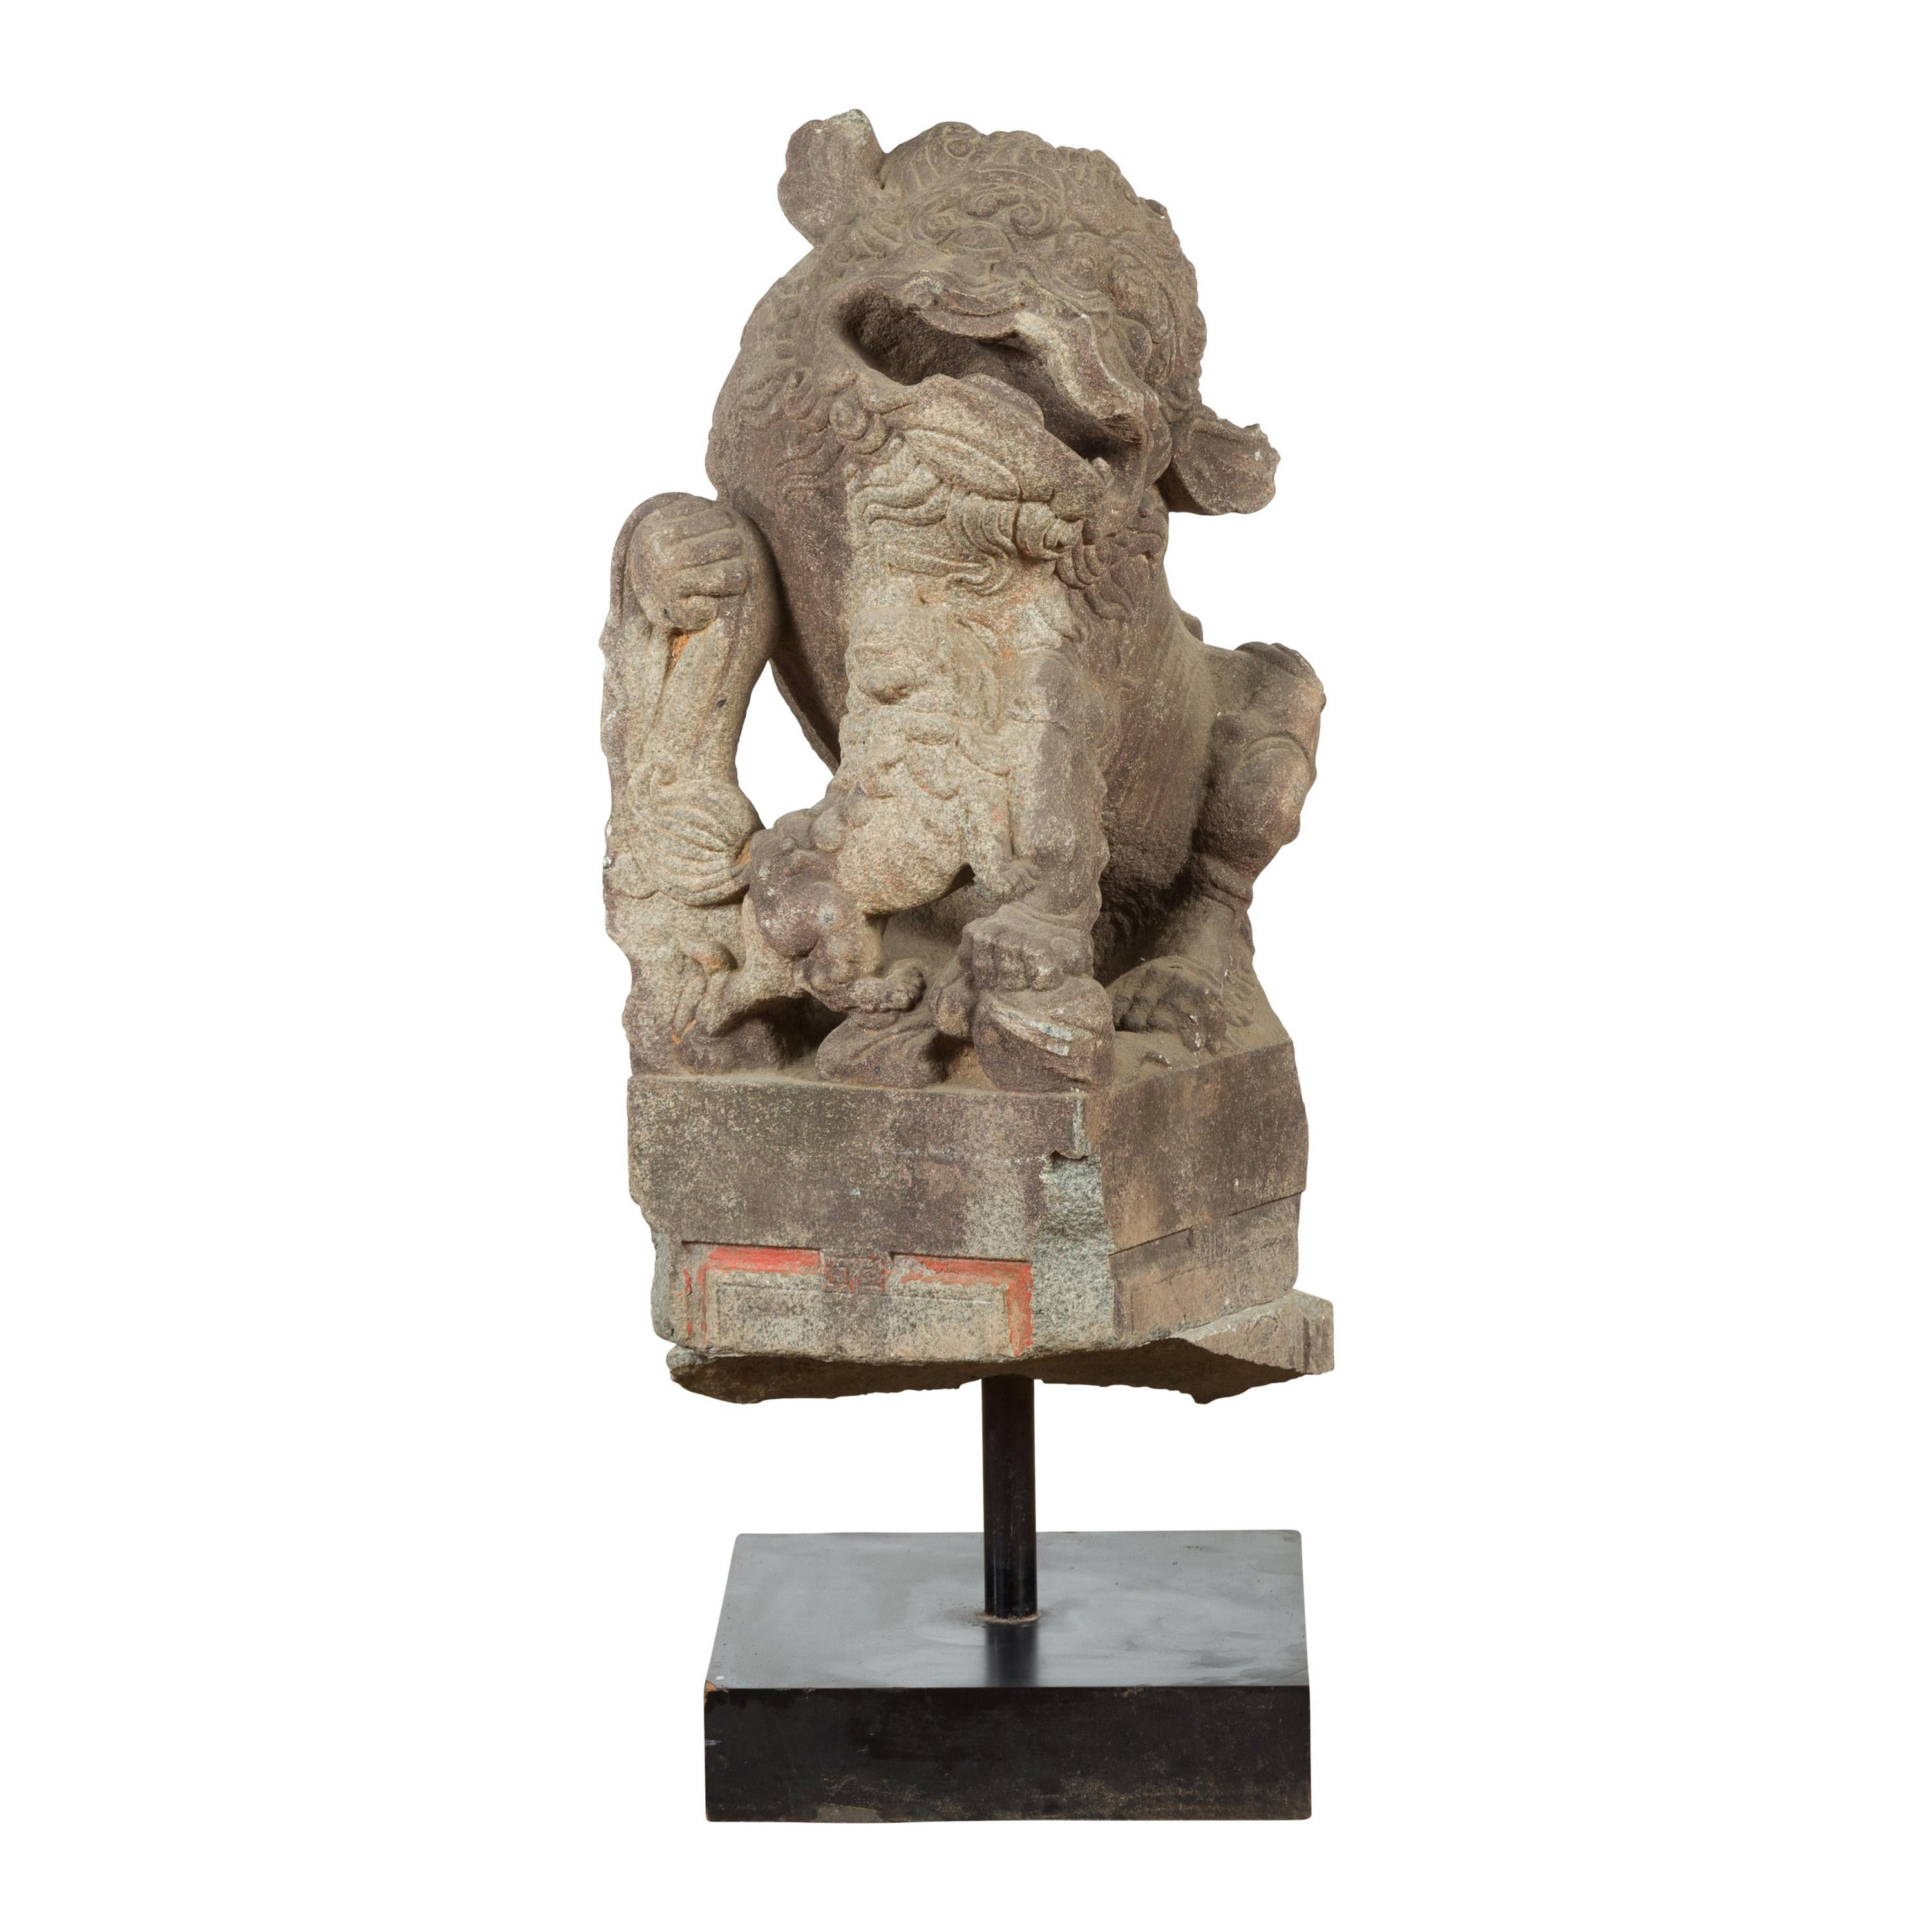 Chinese Qing Dynasty 19th Century Hand-Carved Foo Dog Sculpture Mounted on Base